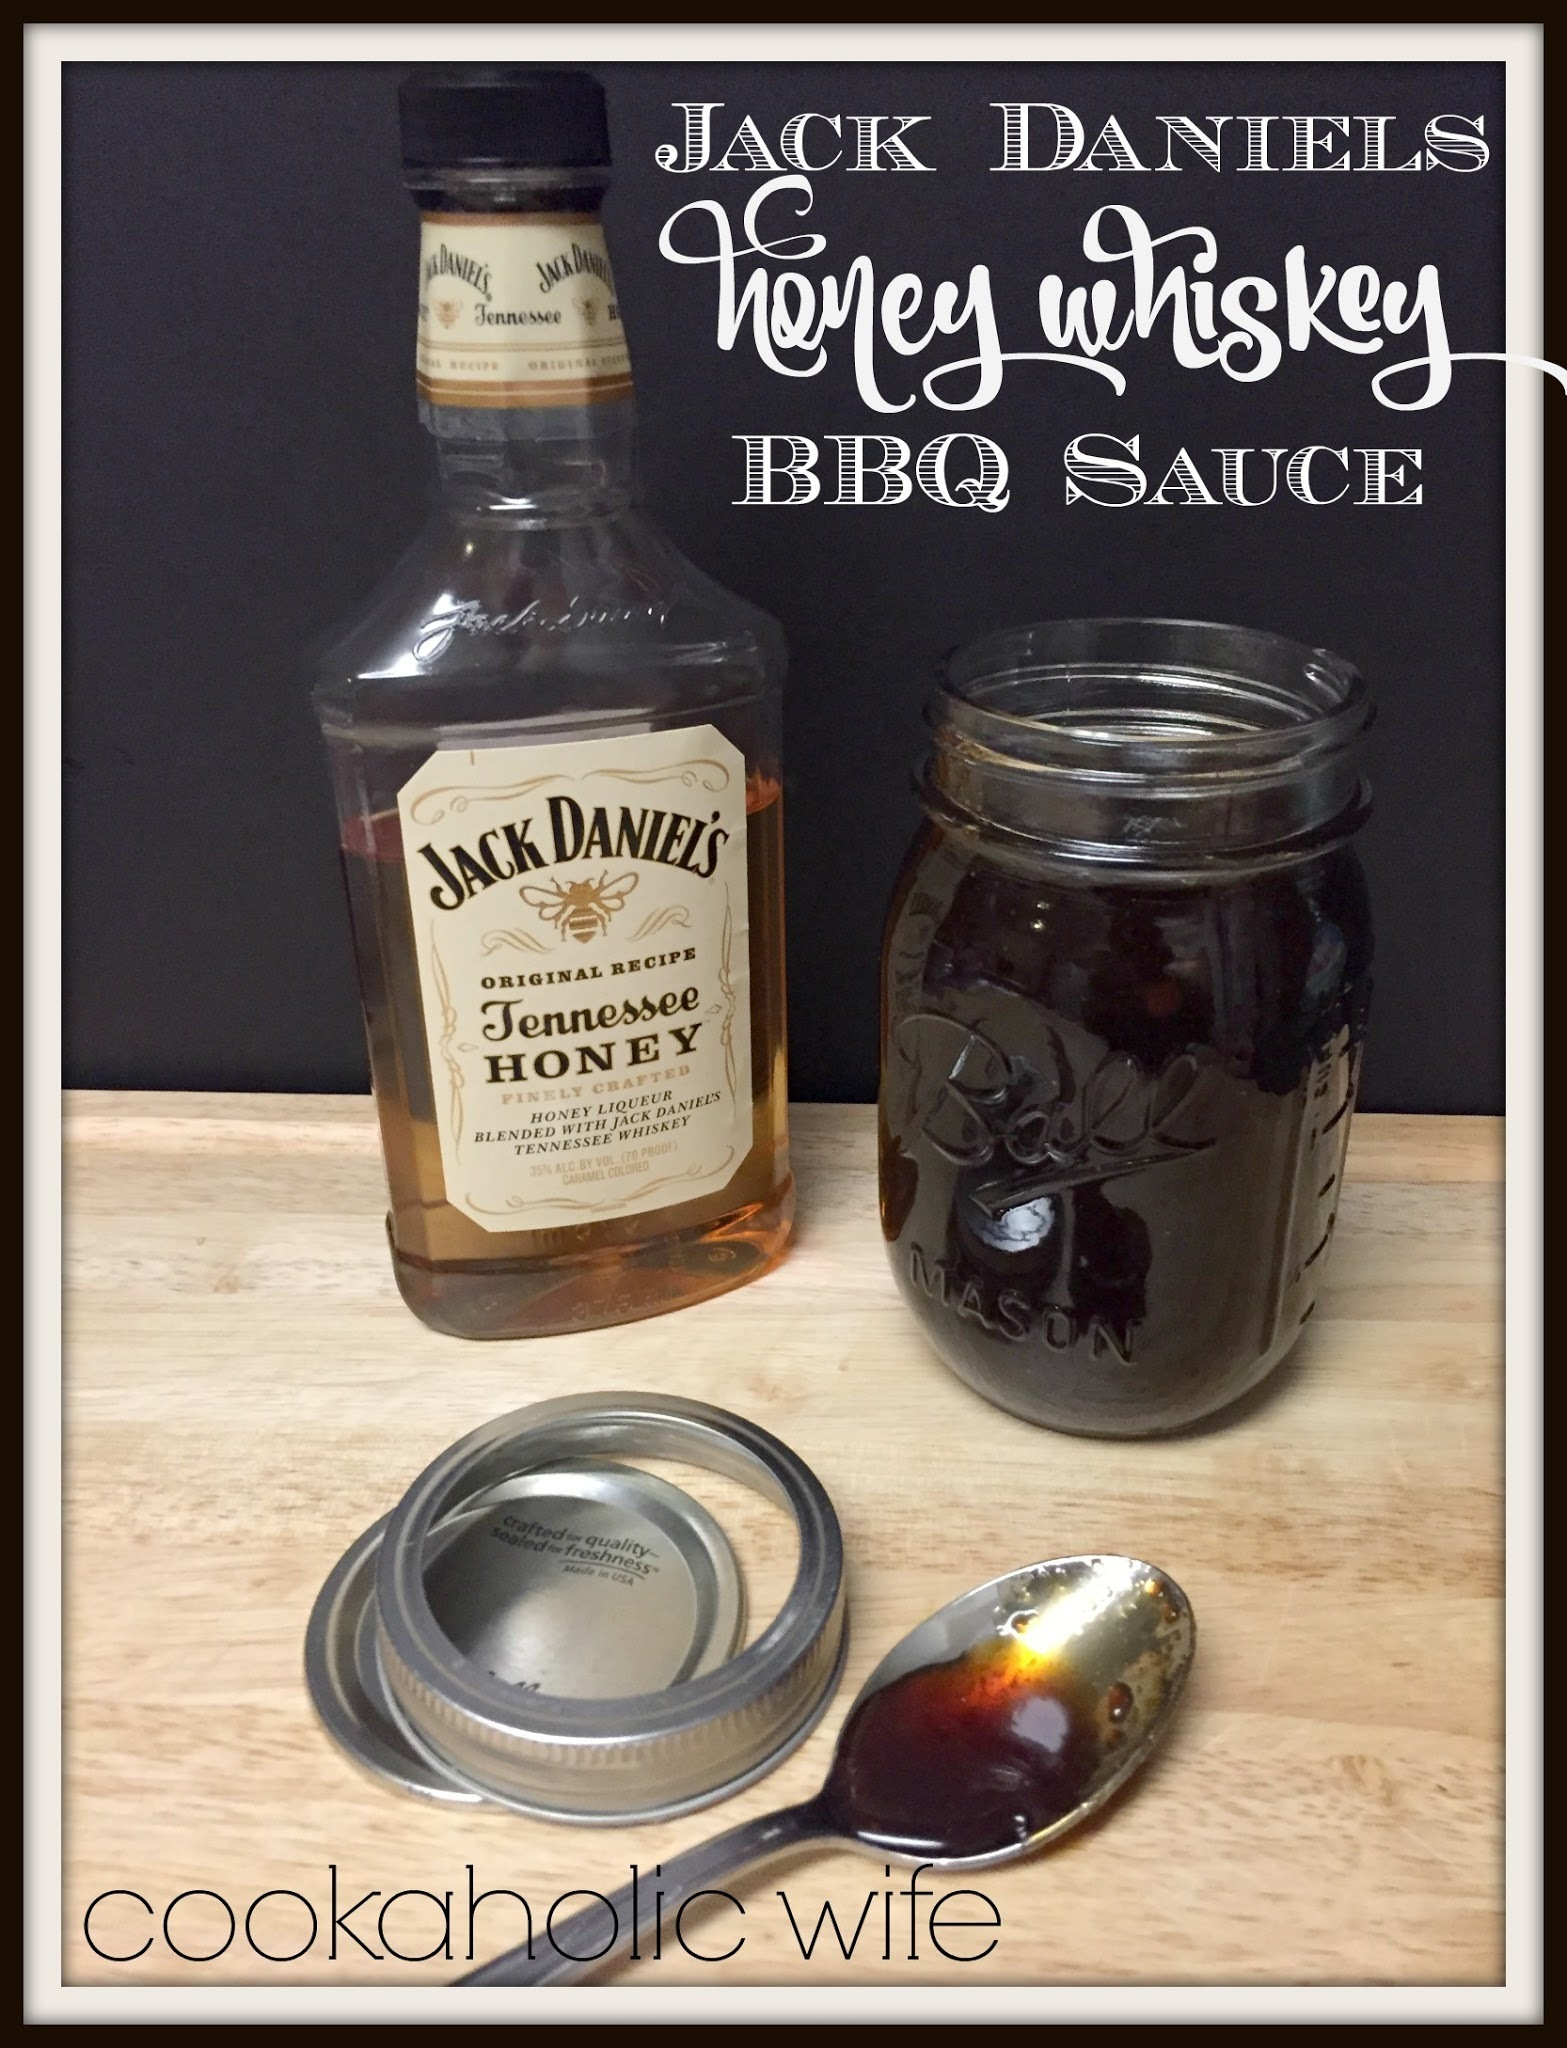 Jack Daniels Honey Whiskey BBQ Sauce